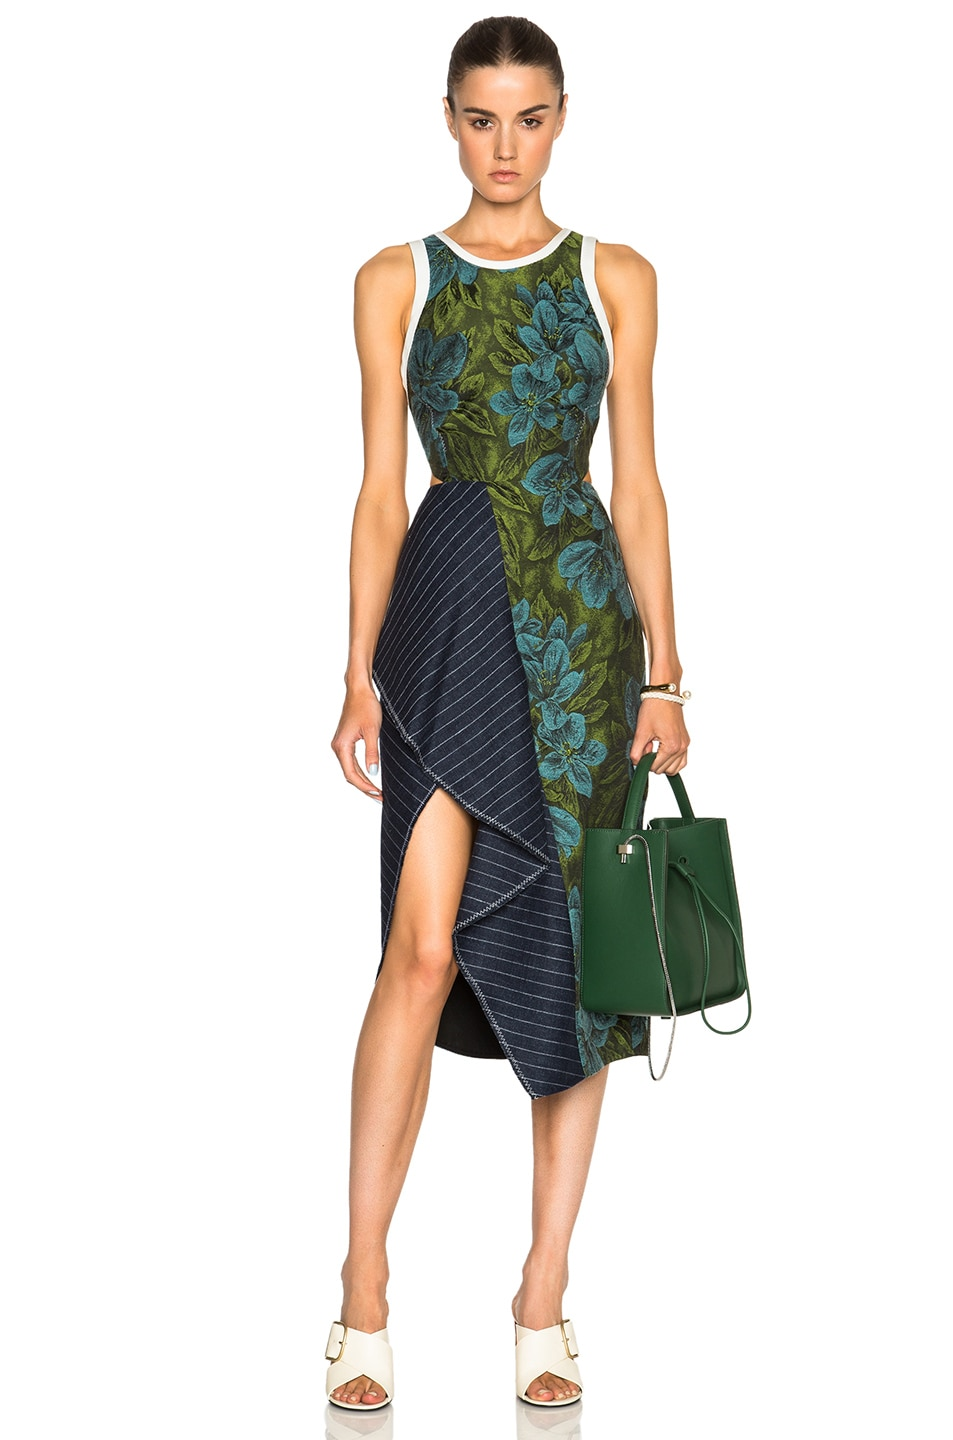 Image 1 Of 3 Phillip Lim Cascading Skirt Ruffle Dress In Leaf Hydro